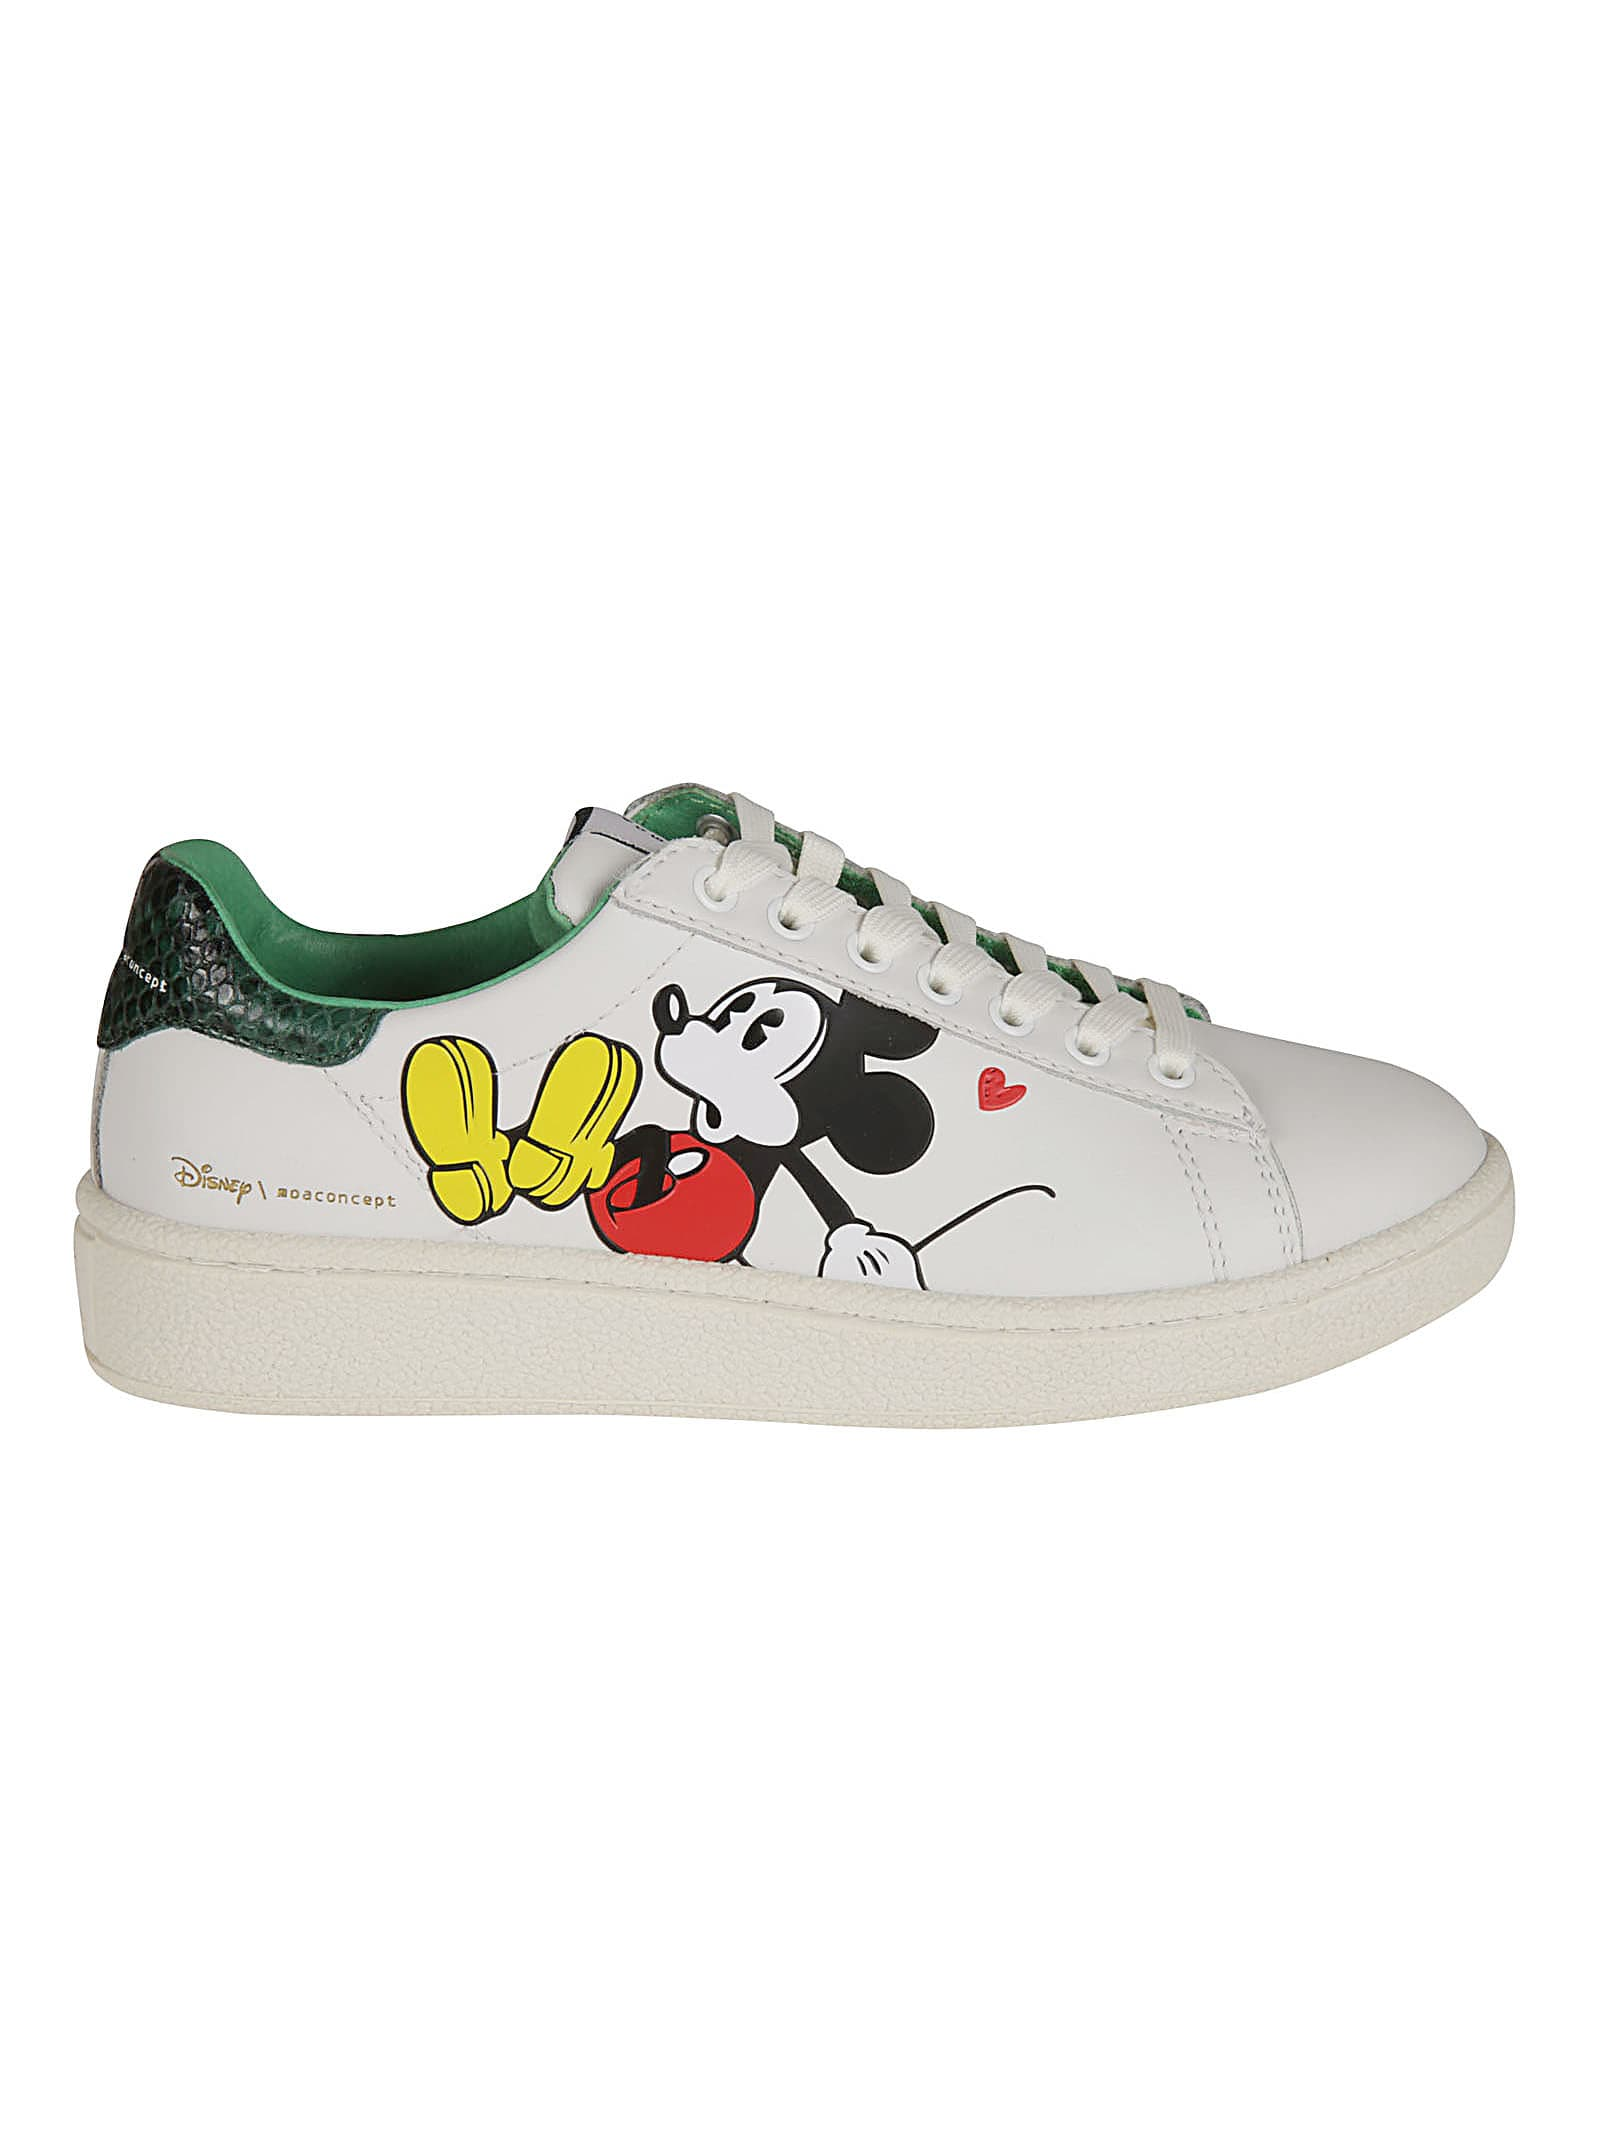 Moa Master Of Arts Leathers GRAND MASTER MICKEY MOUSE PRINTED SNEAKERS